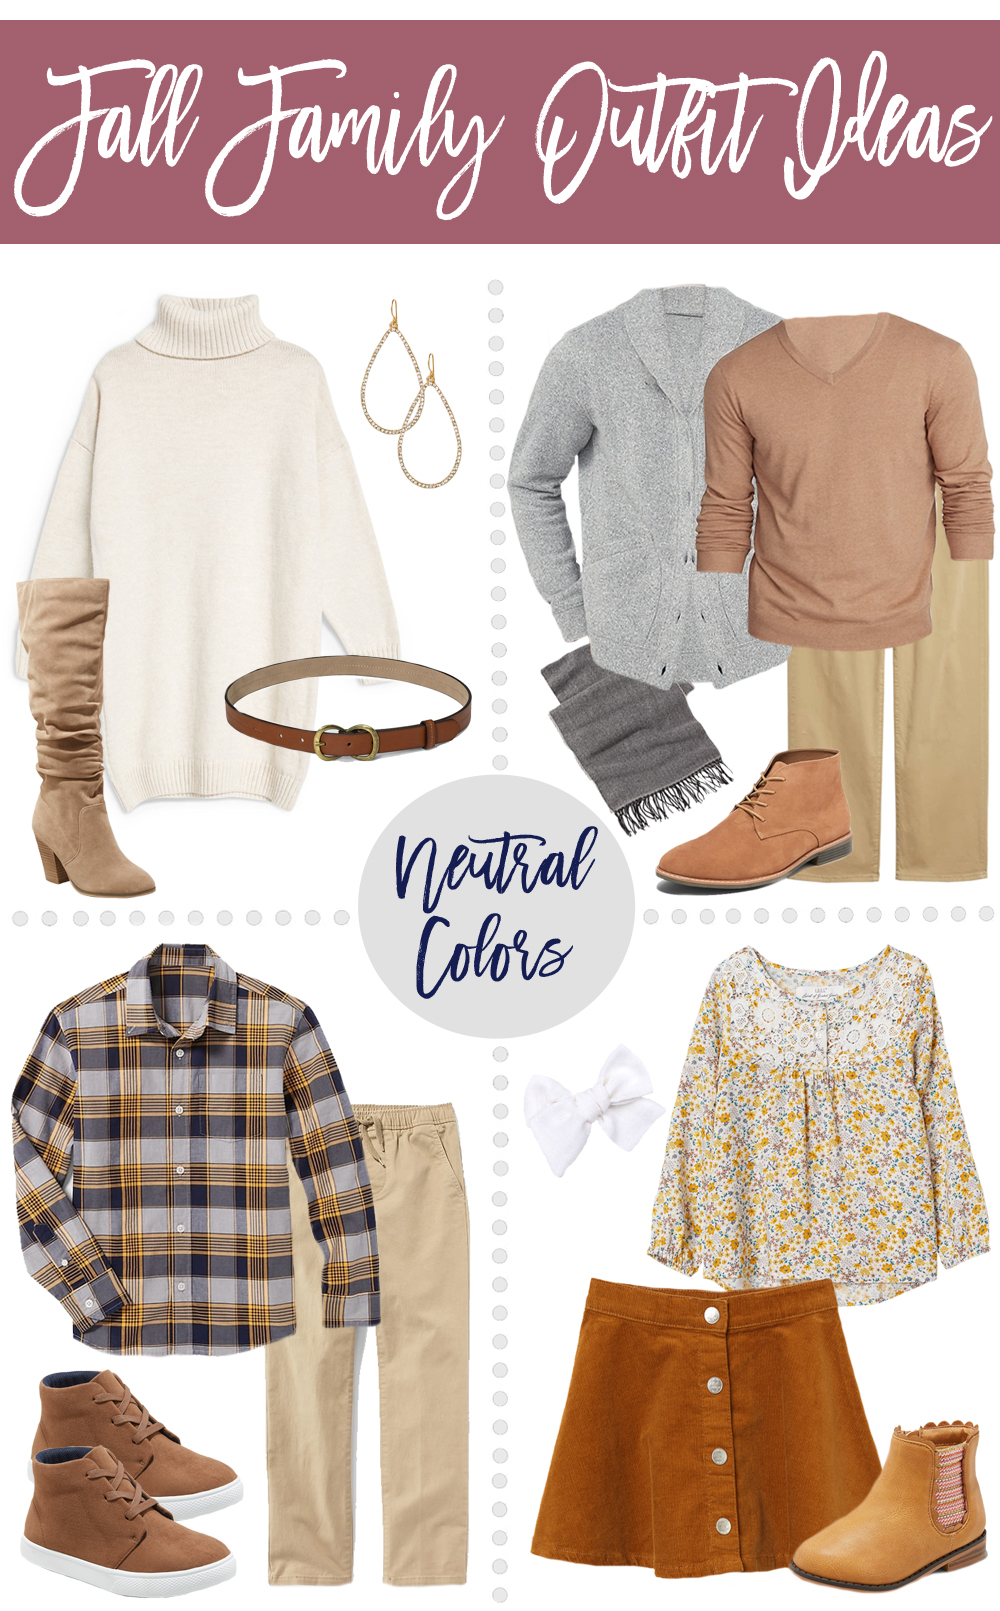 Fall Family Outfit Ideas - Bold Color & Neutral Color ...